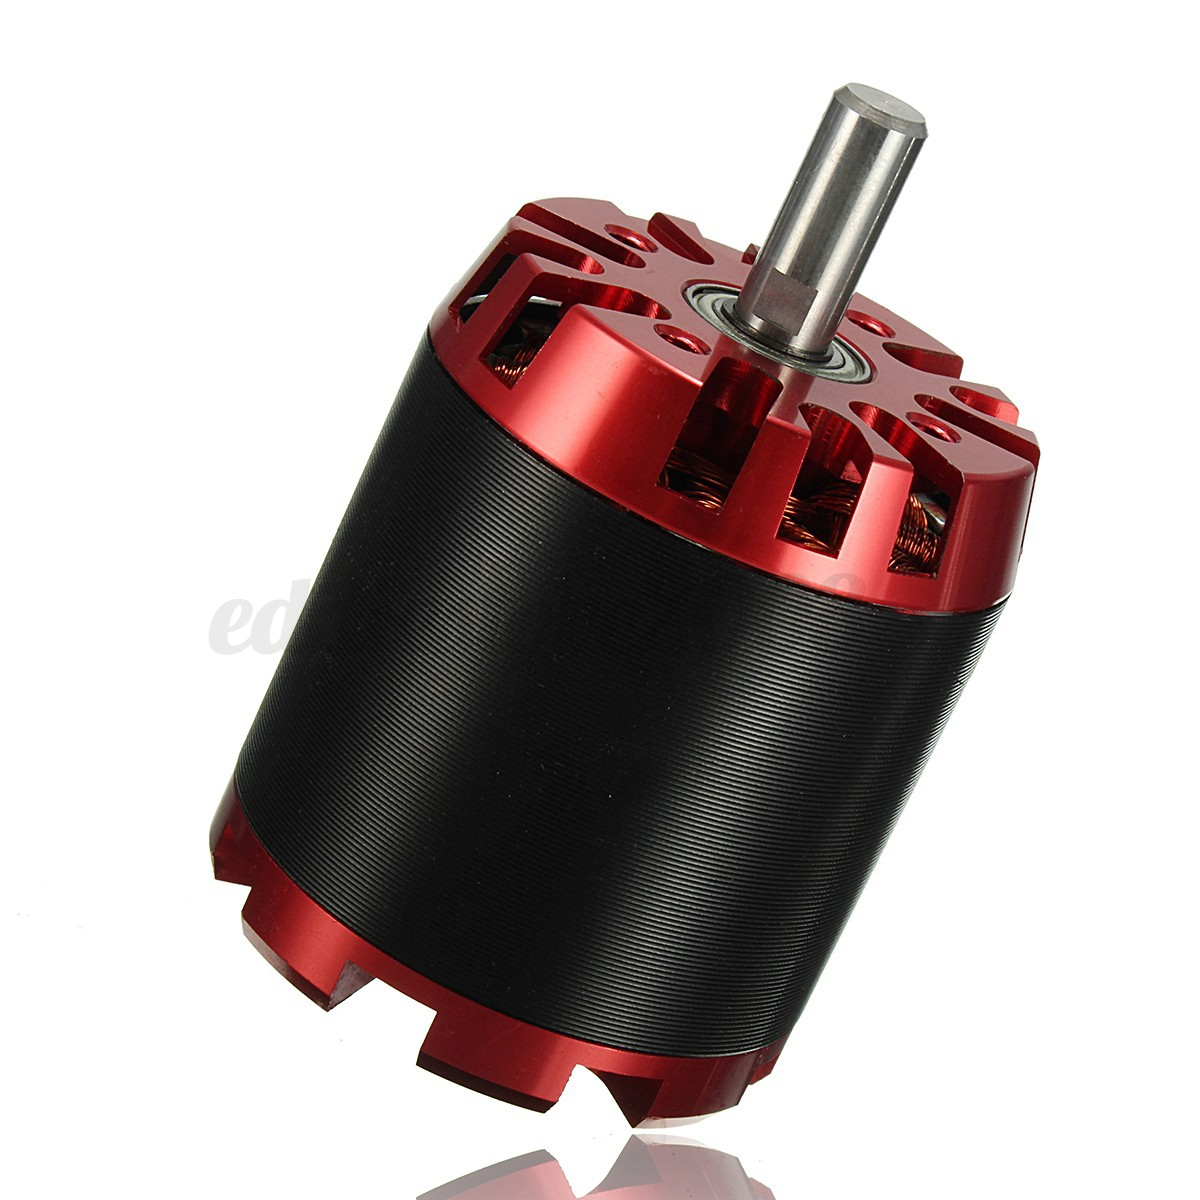 N5065 270KV 1820W Brushless Motor For Electric Skateboard Scooter Multicopter  eBay